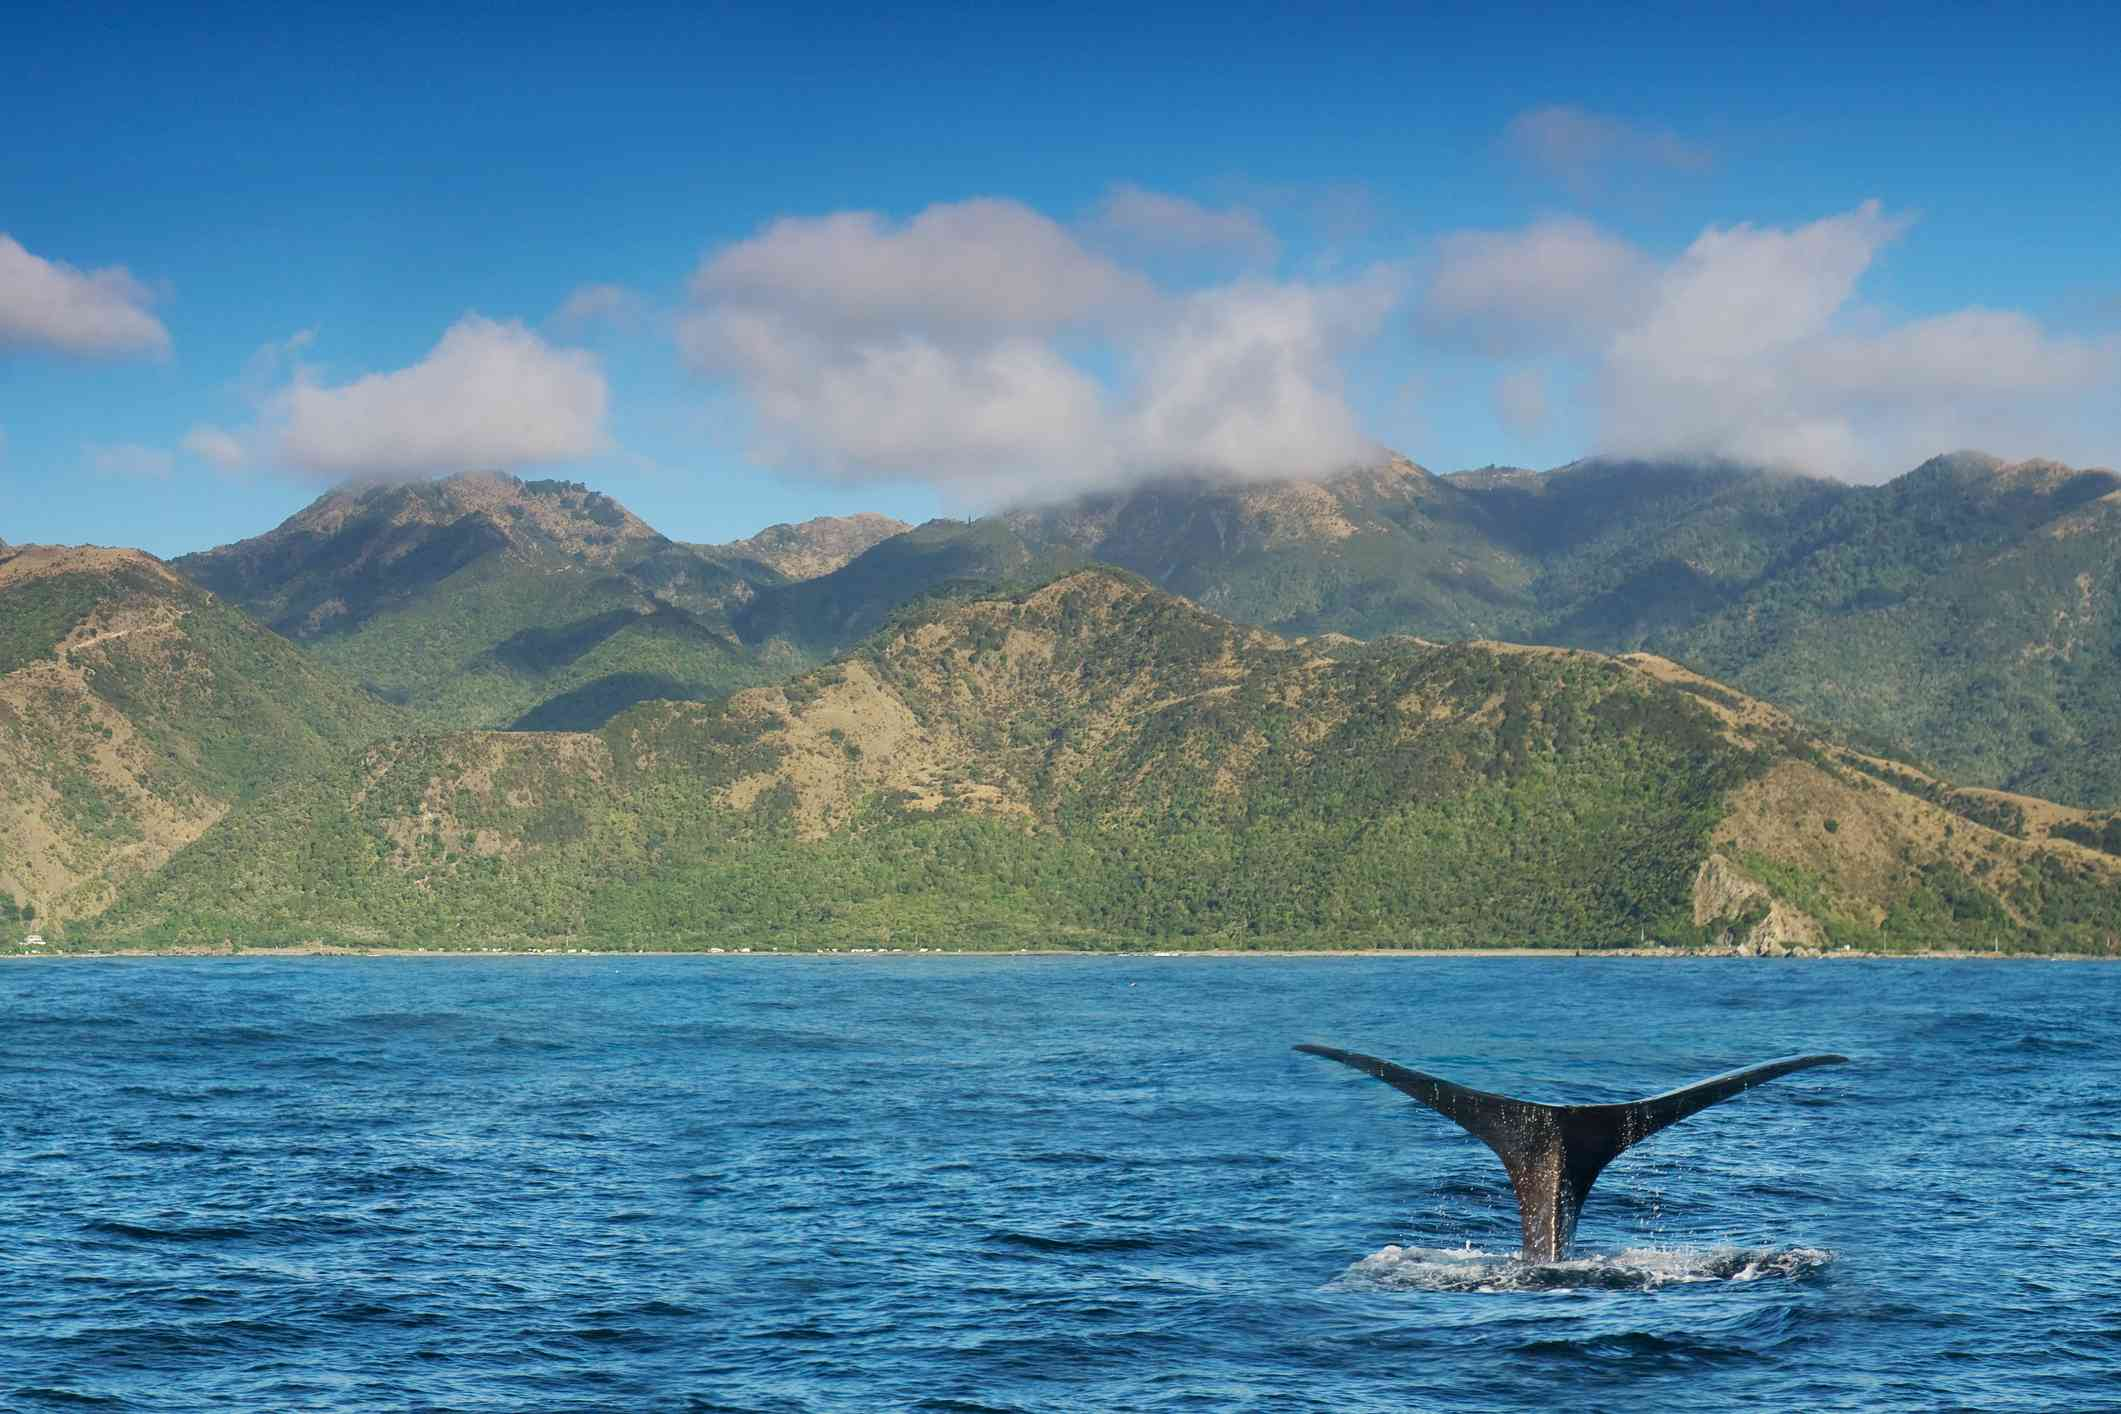 The black tale of a whale as it dives into the blue/green sea off the Kaikoura coast with rocky mountains covered with green vegetation and a blue sky and white clouds above